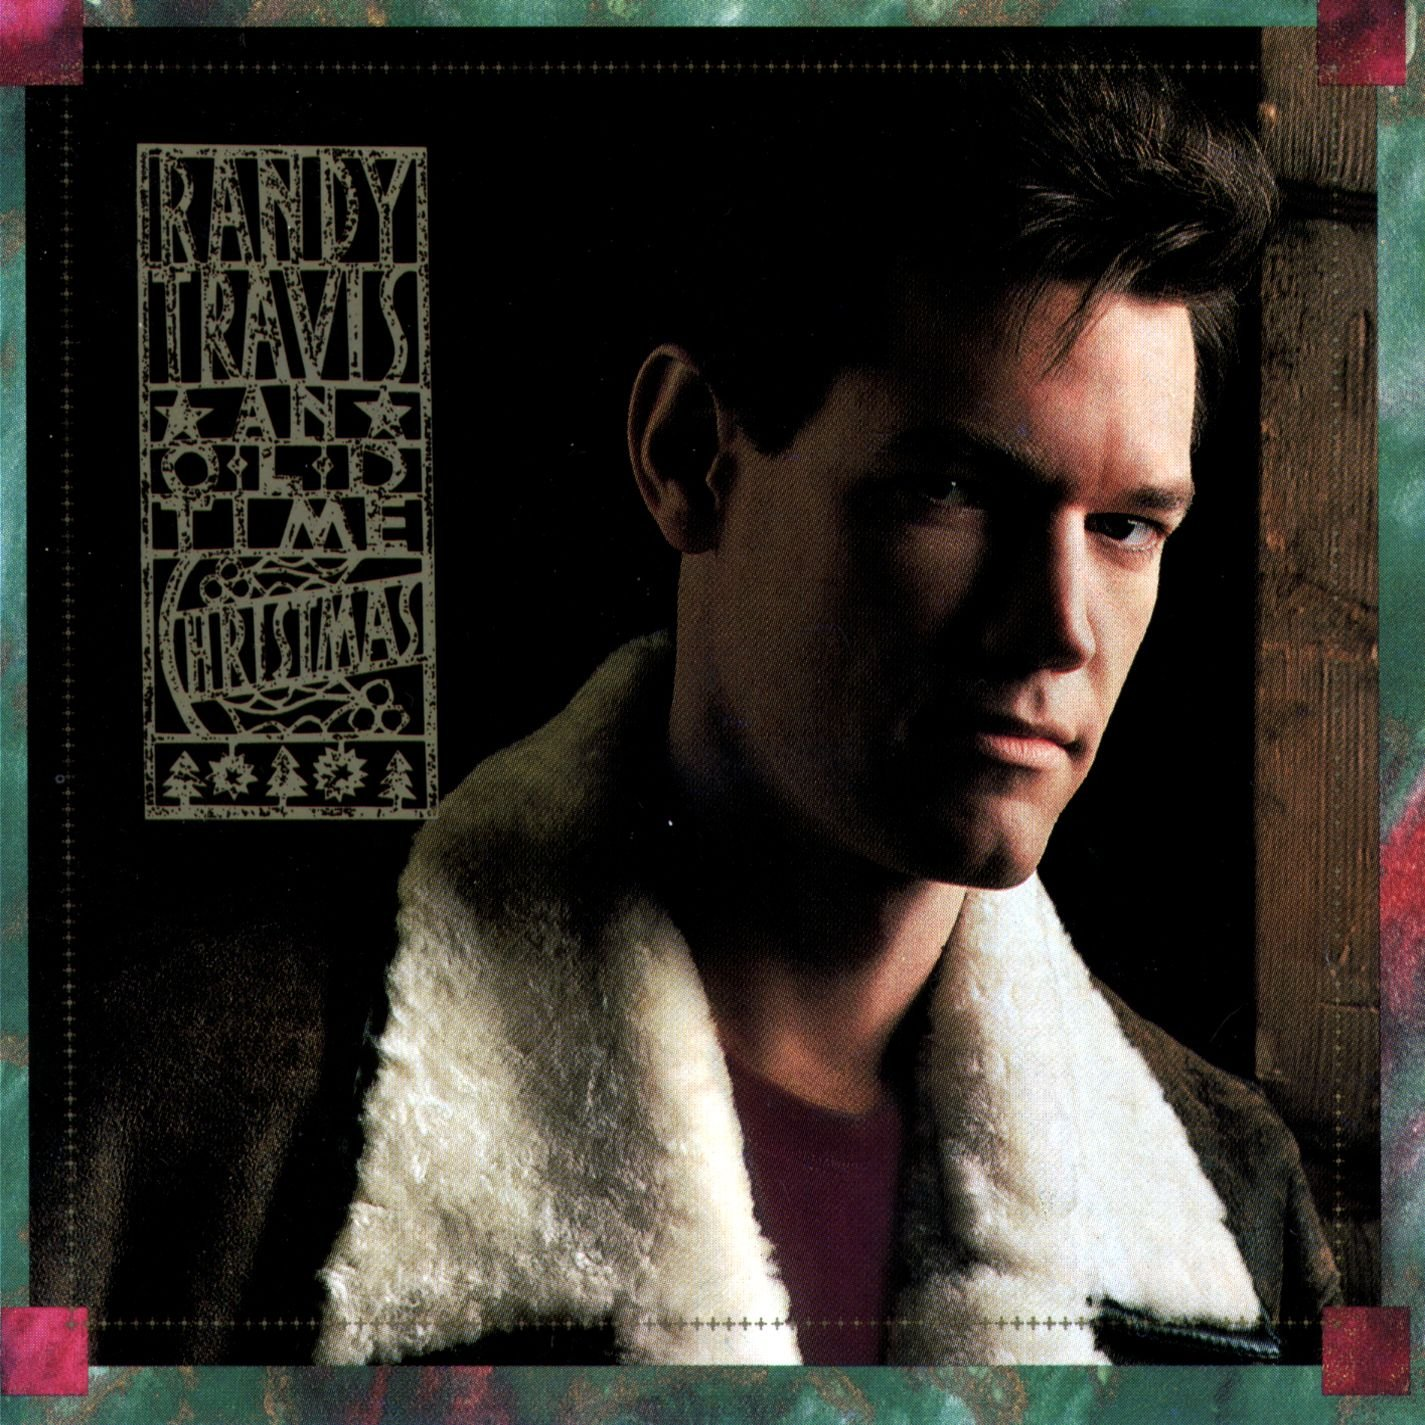 Randy Travis - An Old Time Christmas - Amazon.com Music